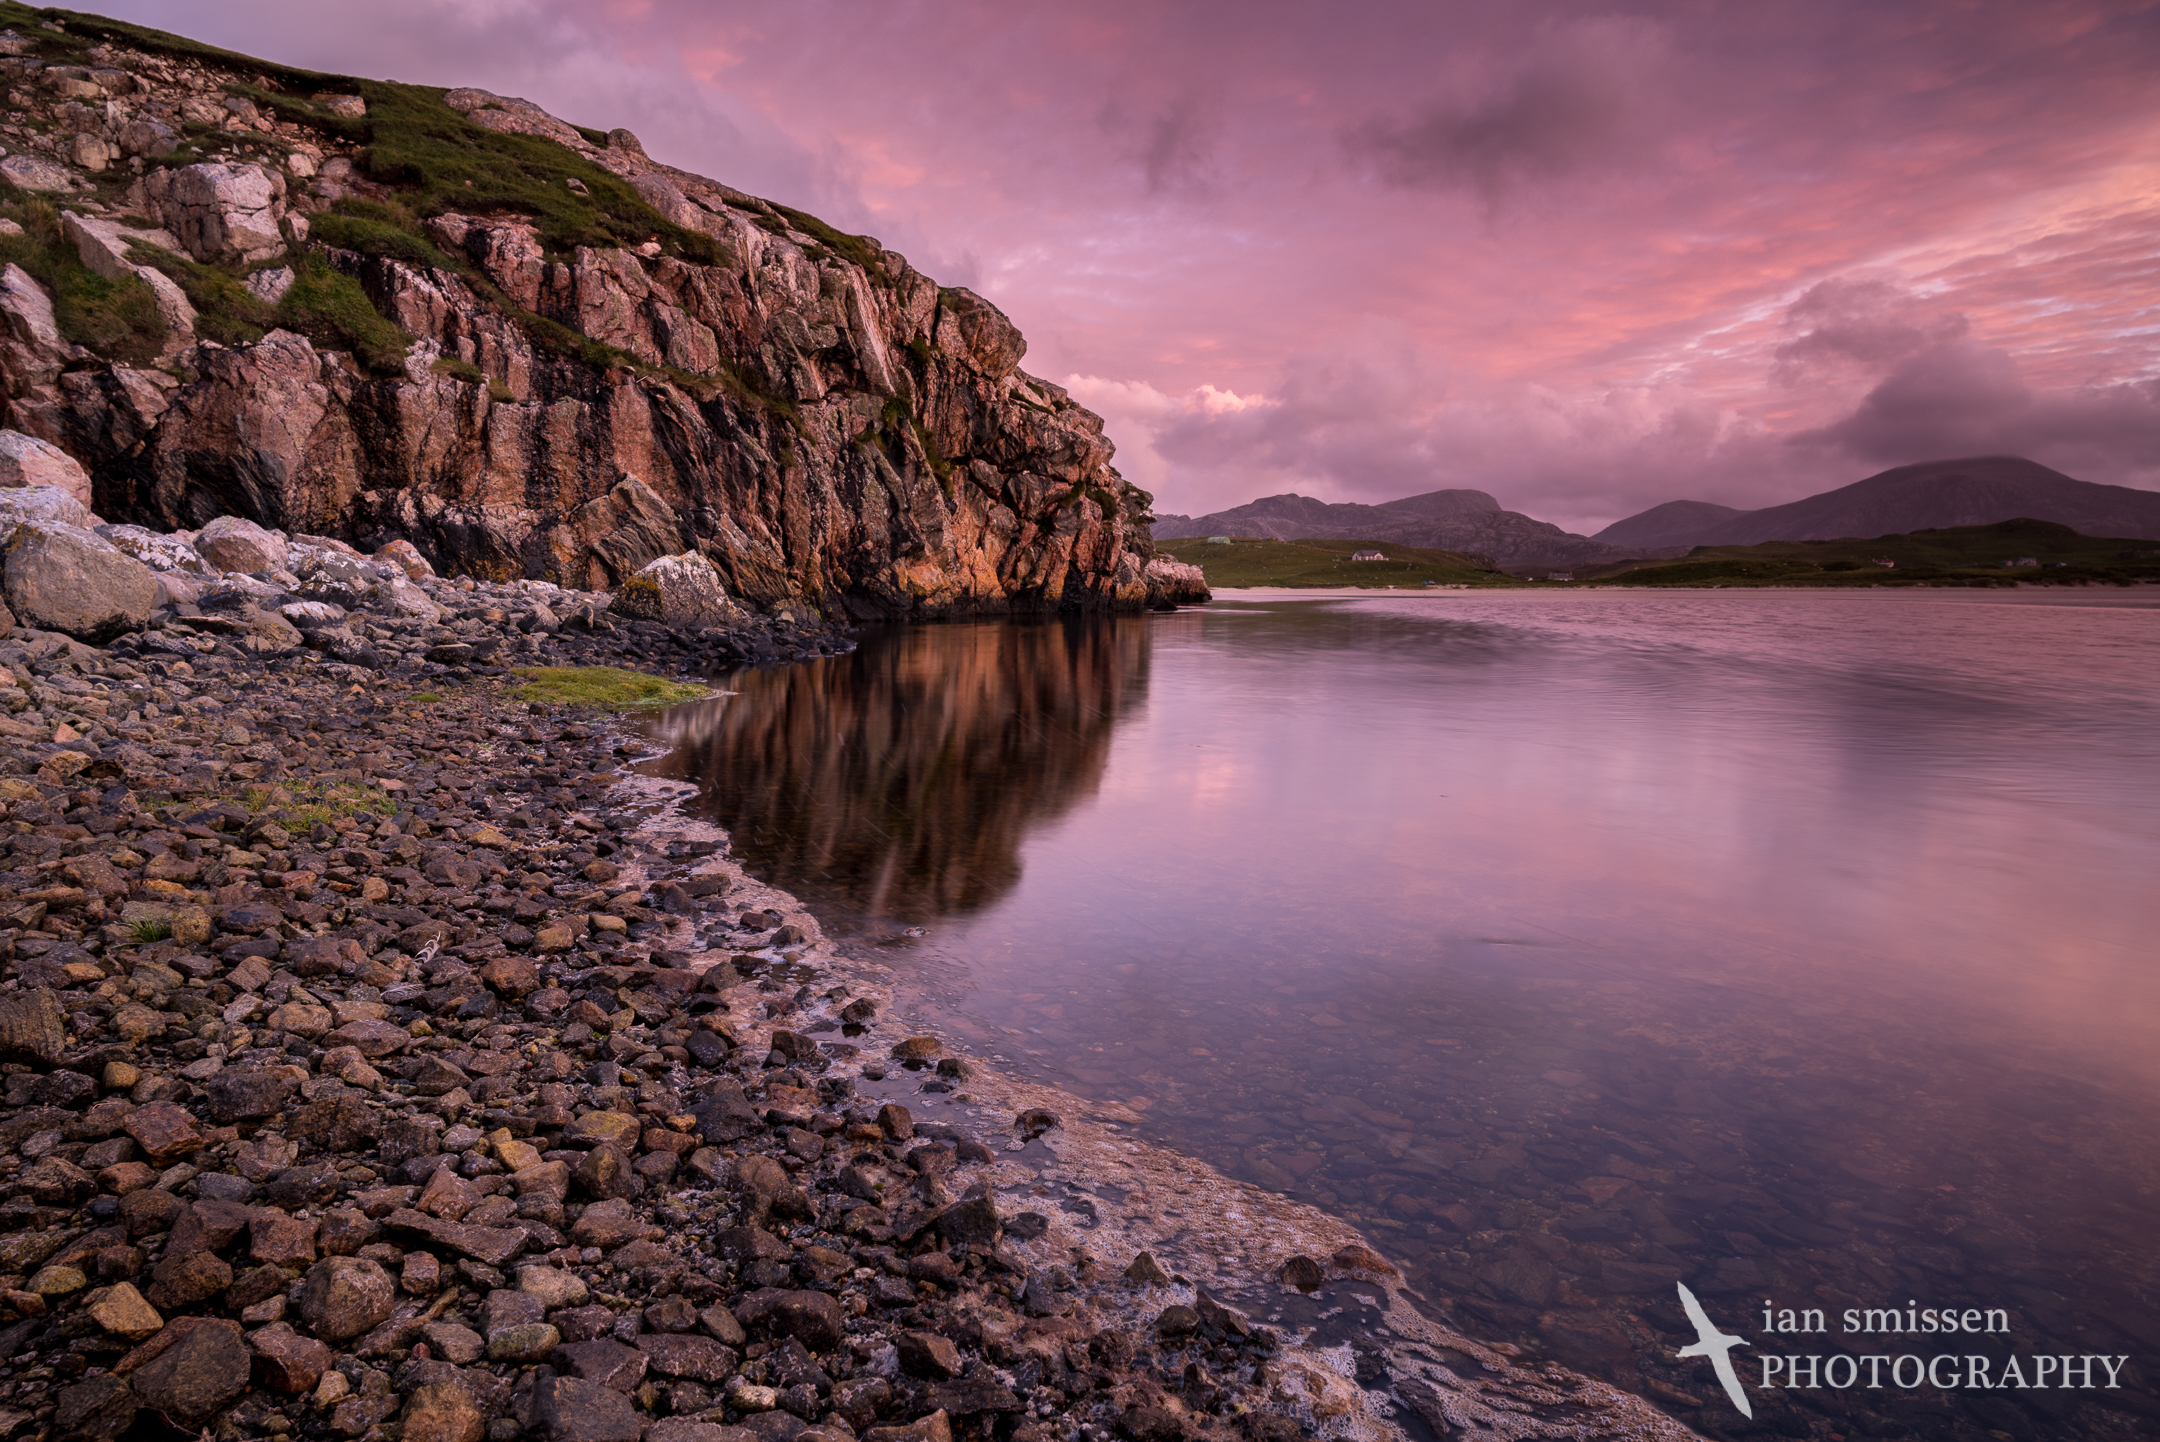 Uig Bay after Sunset